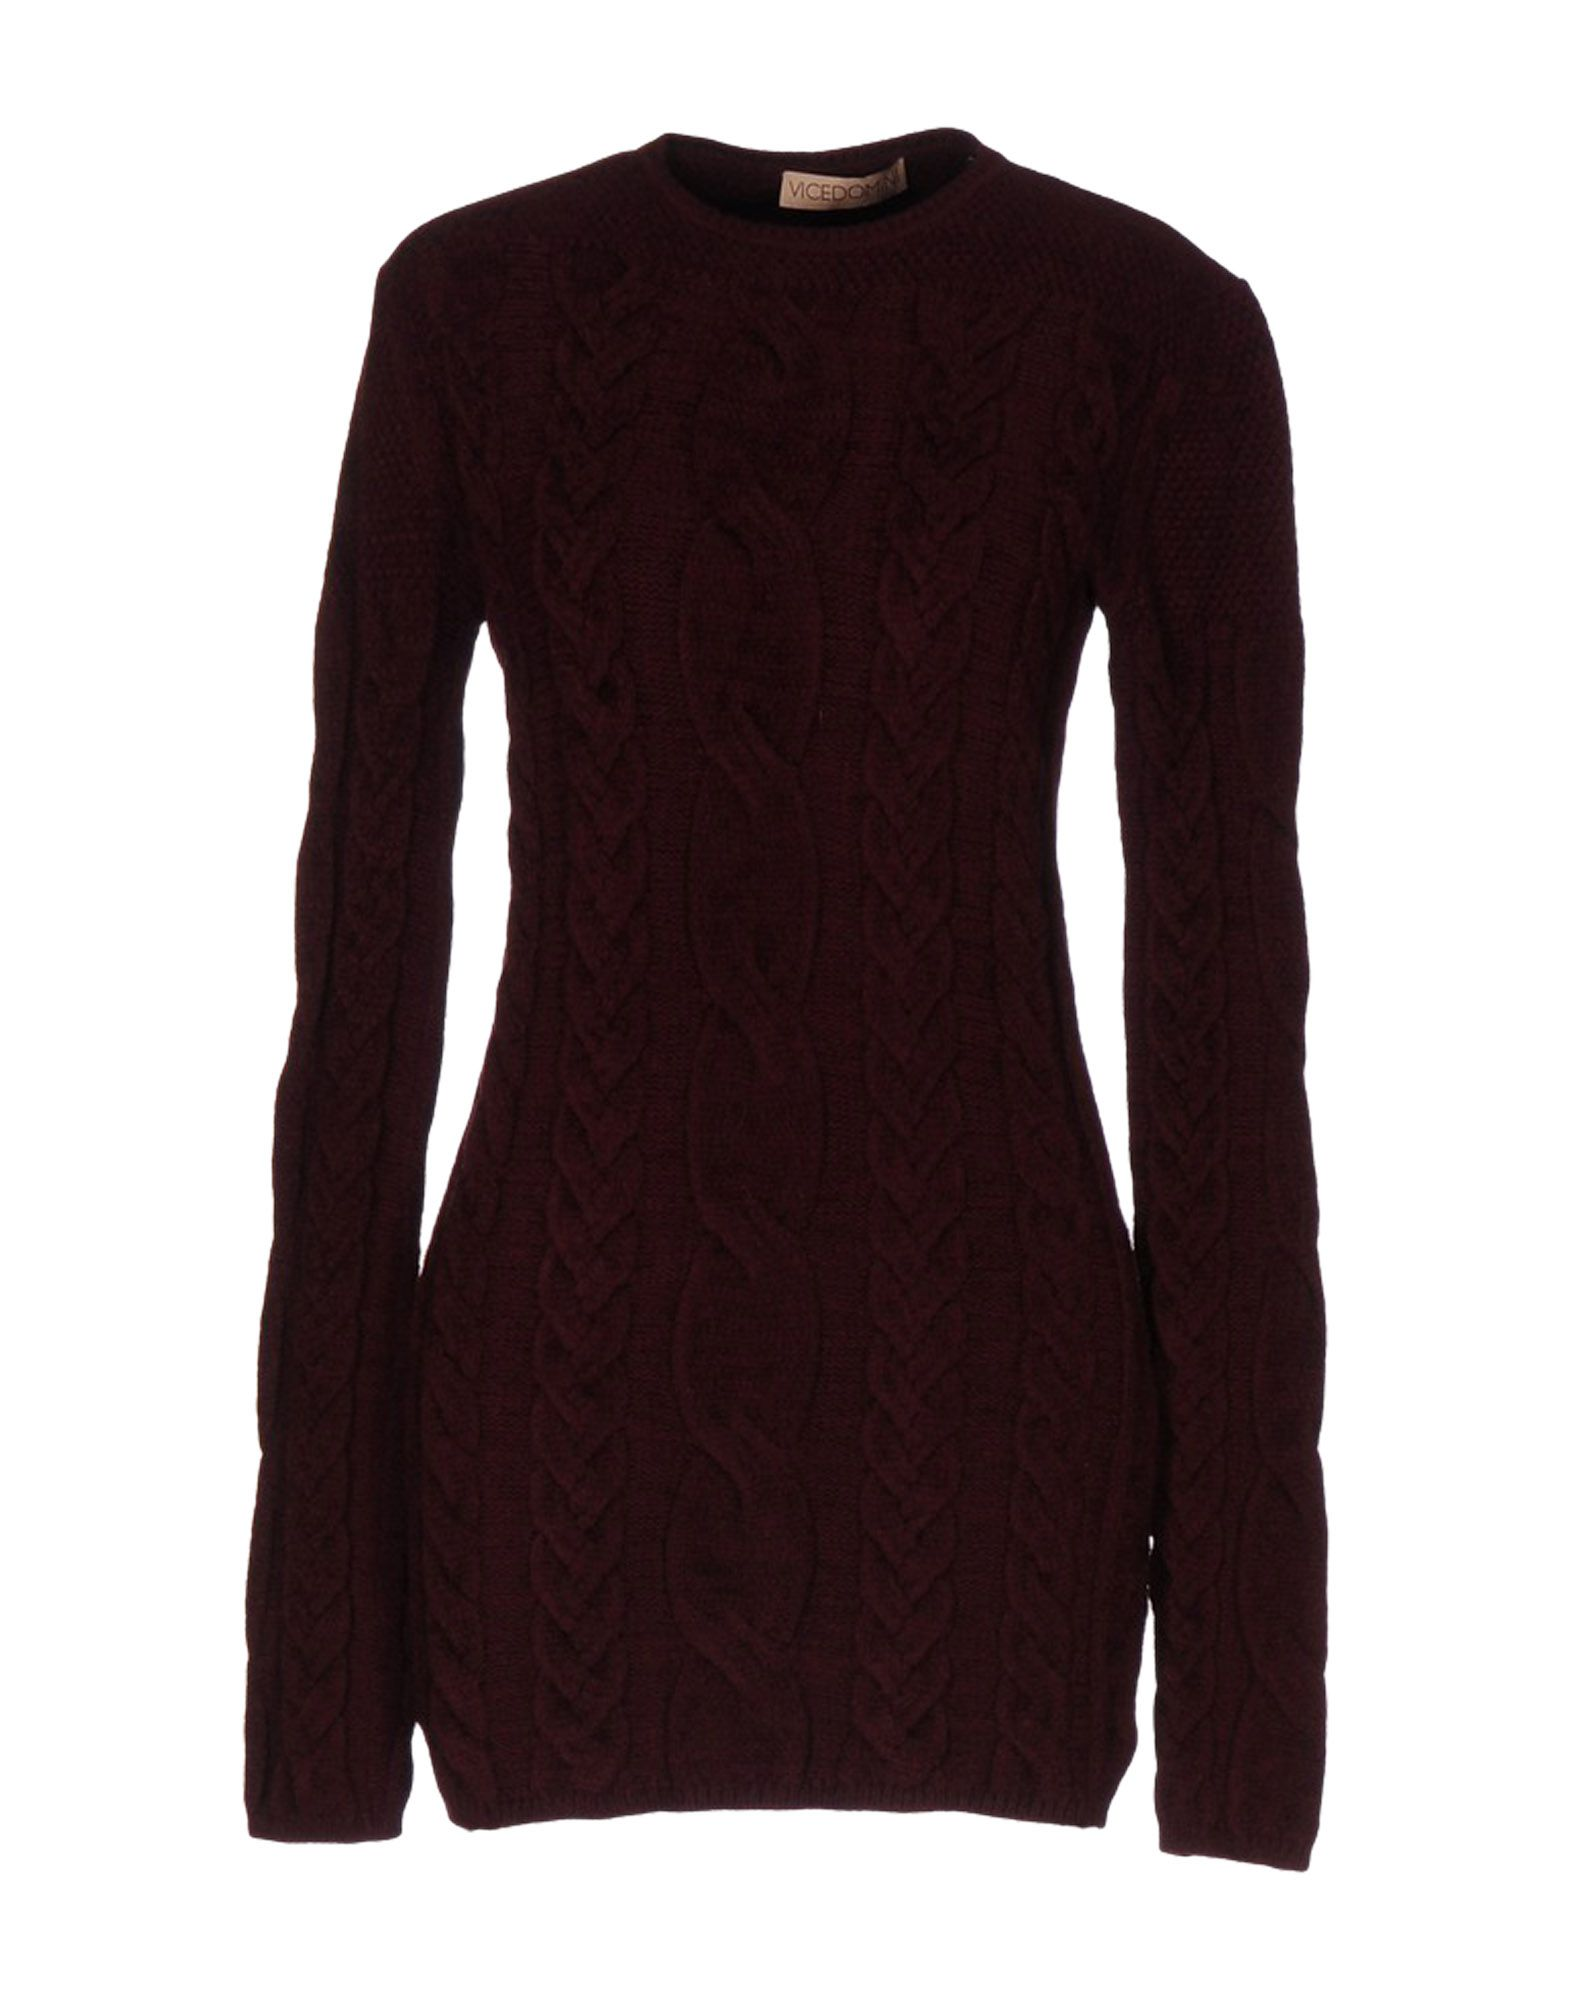 VICEDOMINI Sweater in Maroon